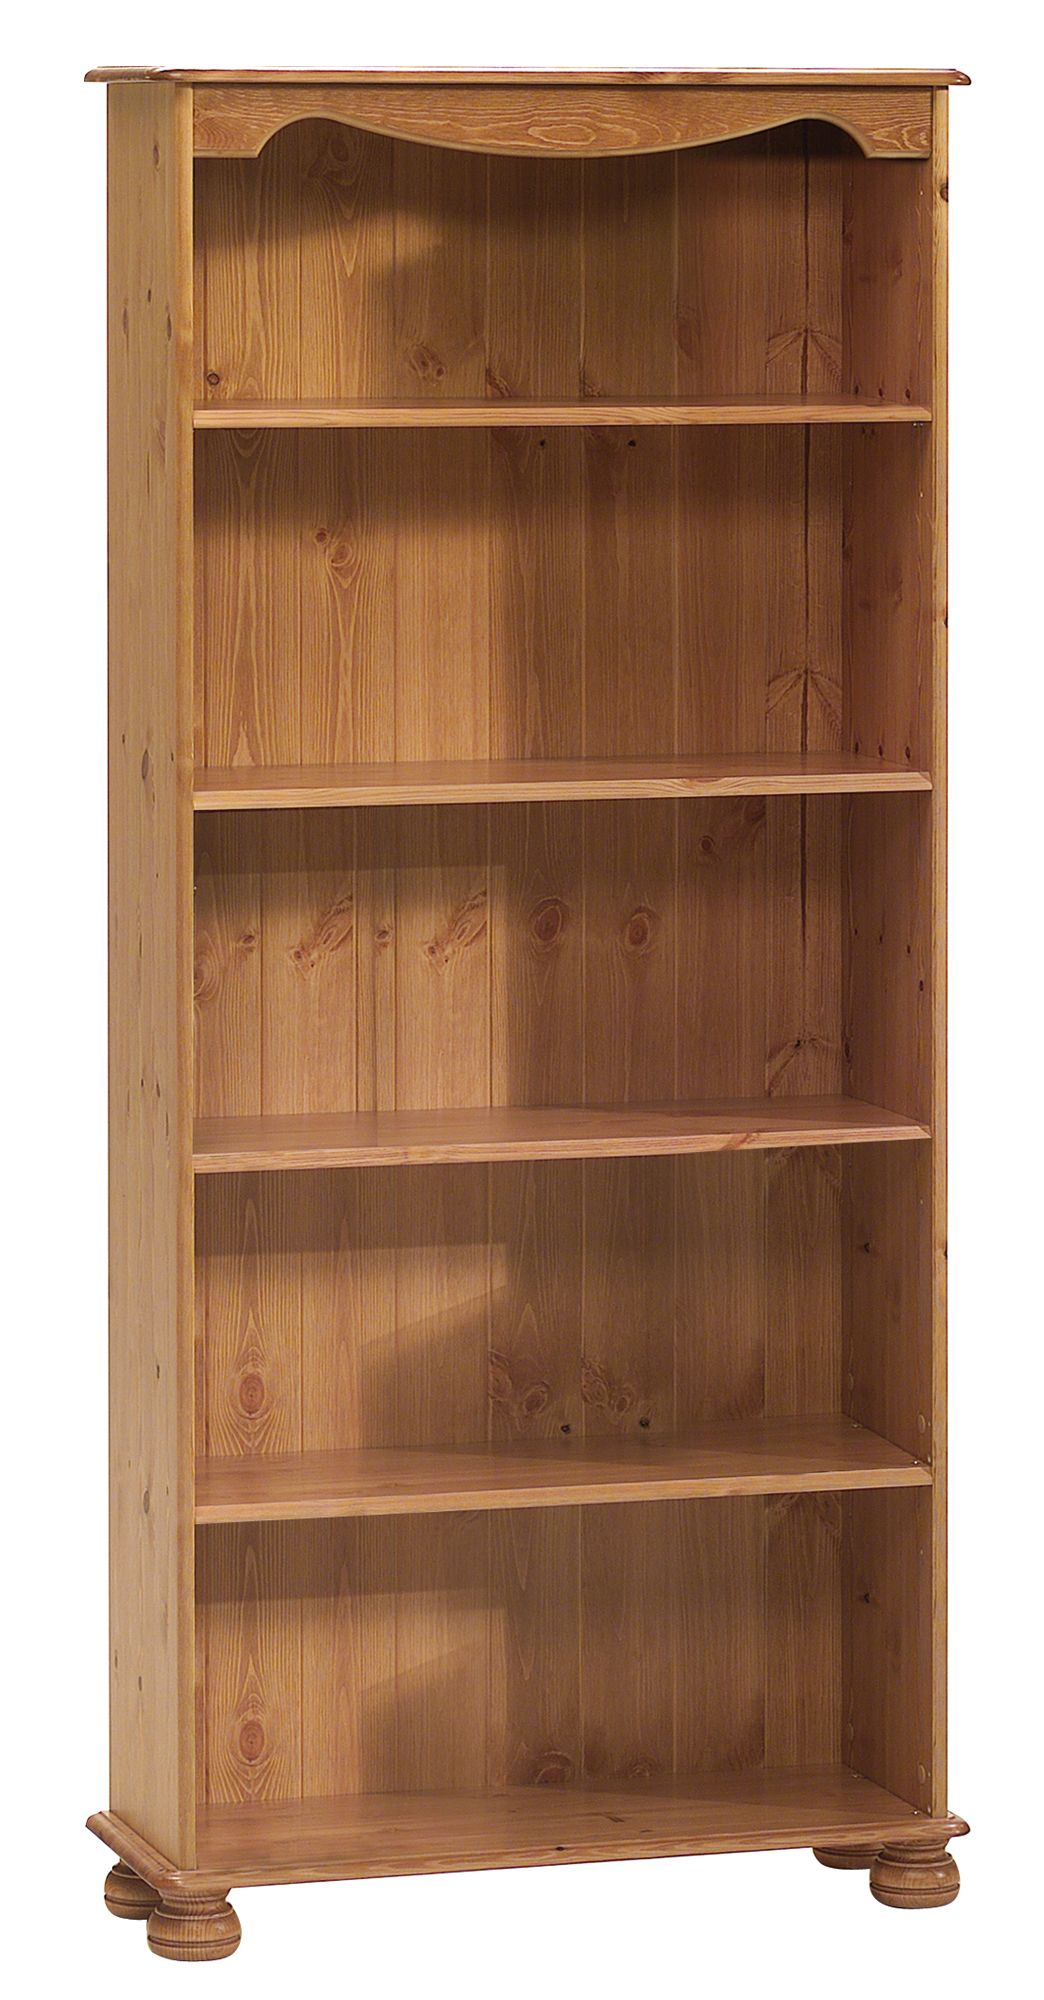 Malmo Antique Effect Bookcase H 1661mm W 767mm D 270mm Departments Diy At B Q